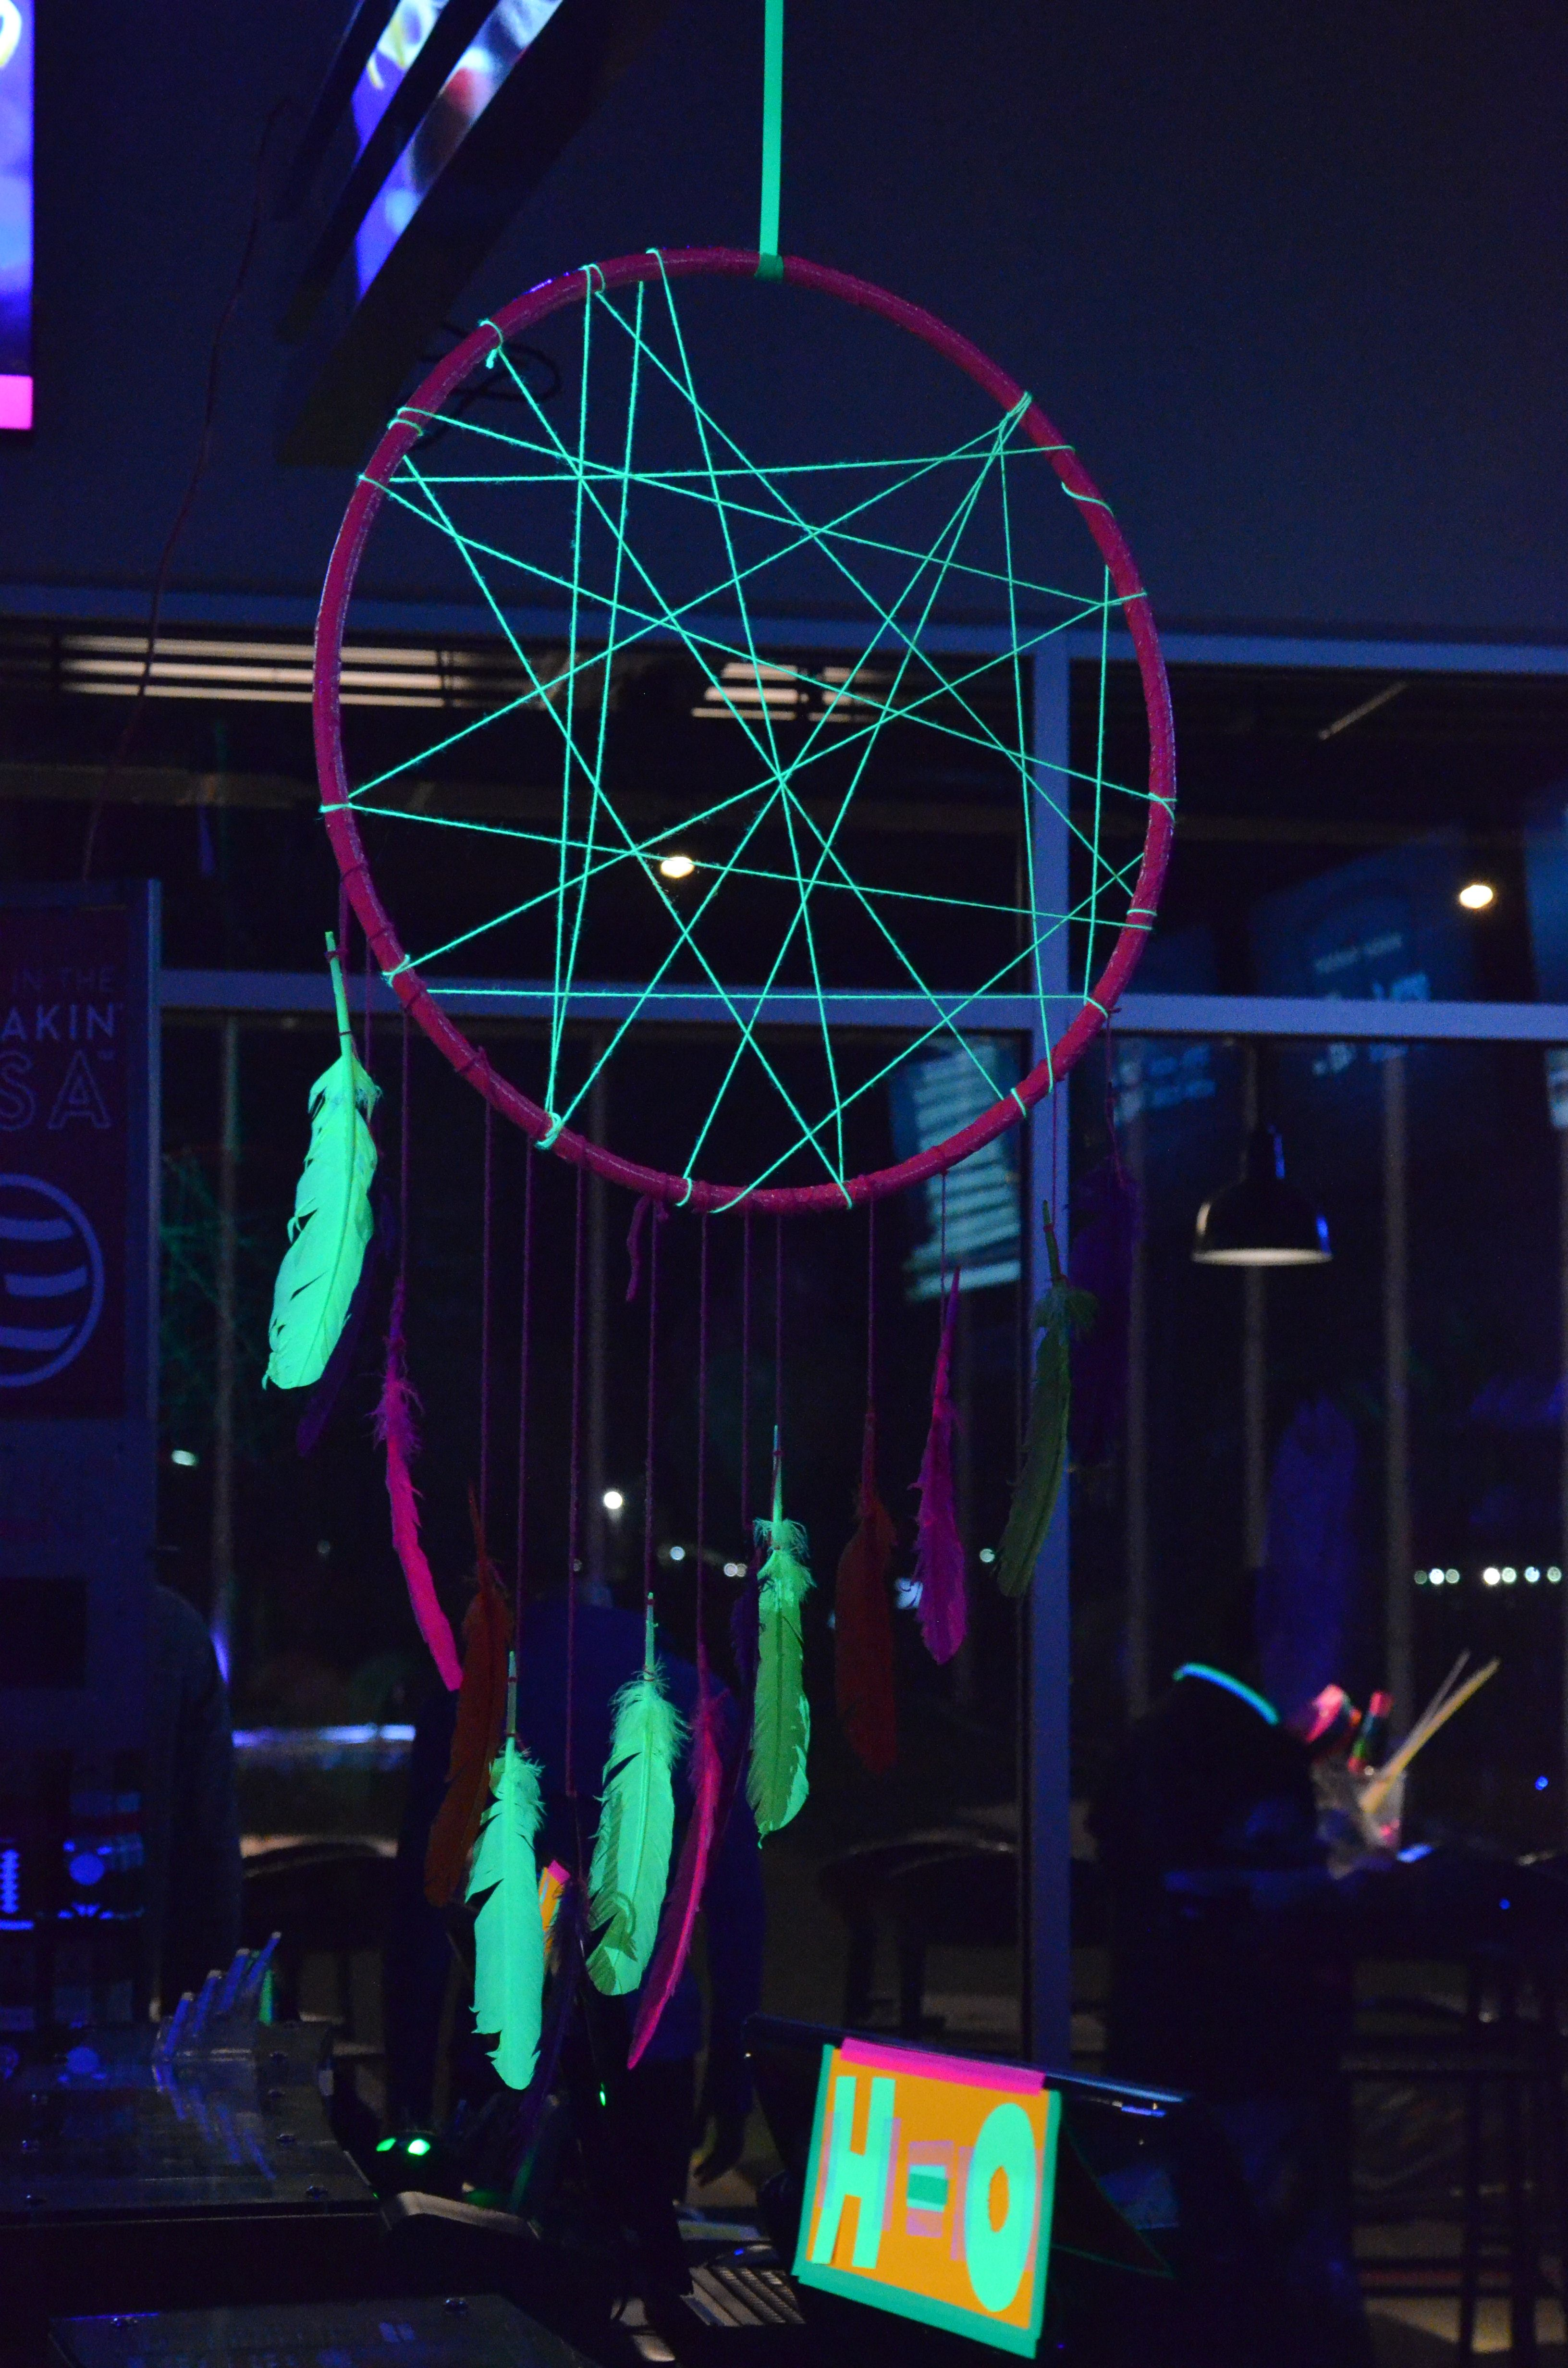 Black Light Neon Dream Catcher Made With A Hula Hoop,